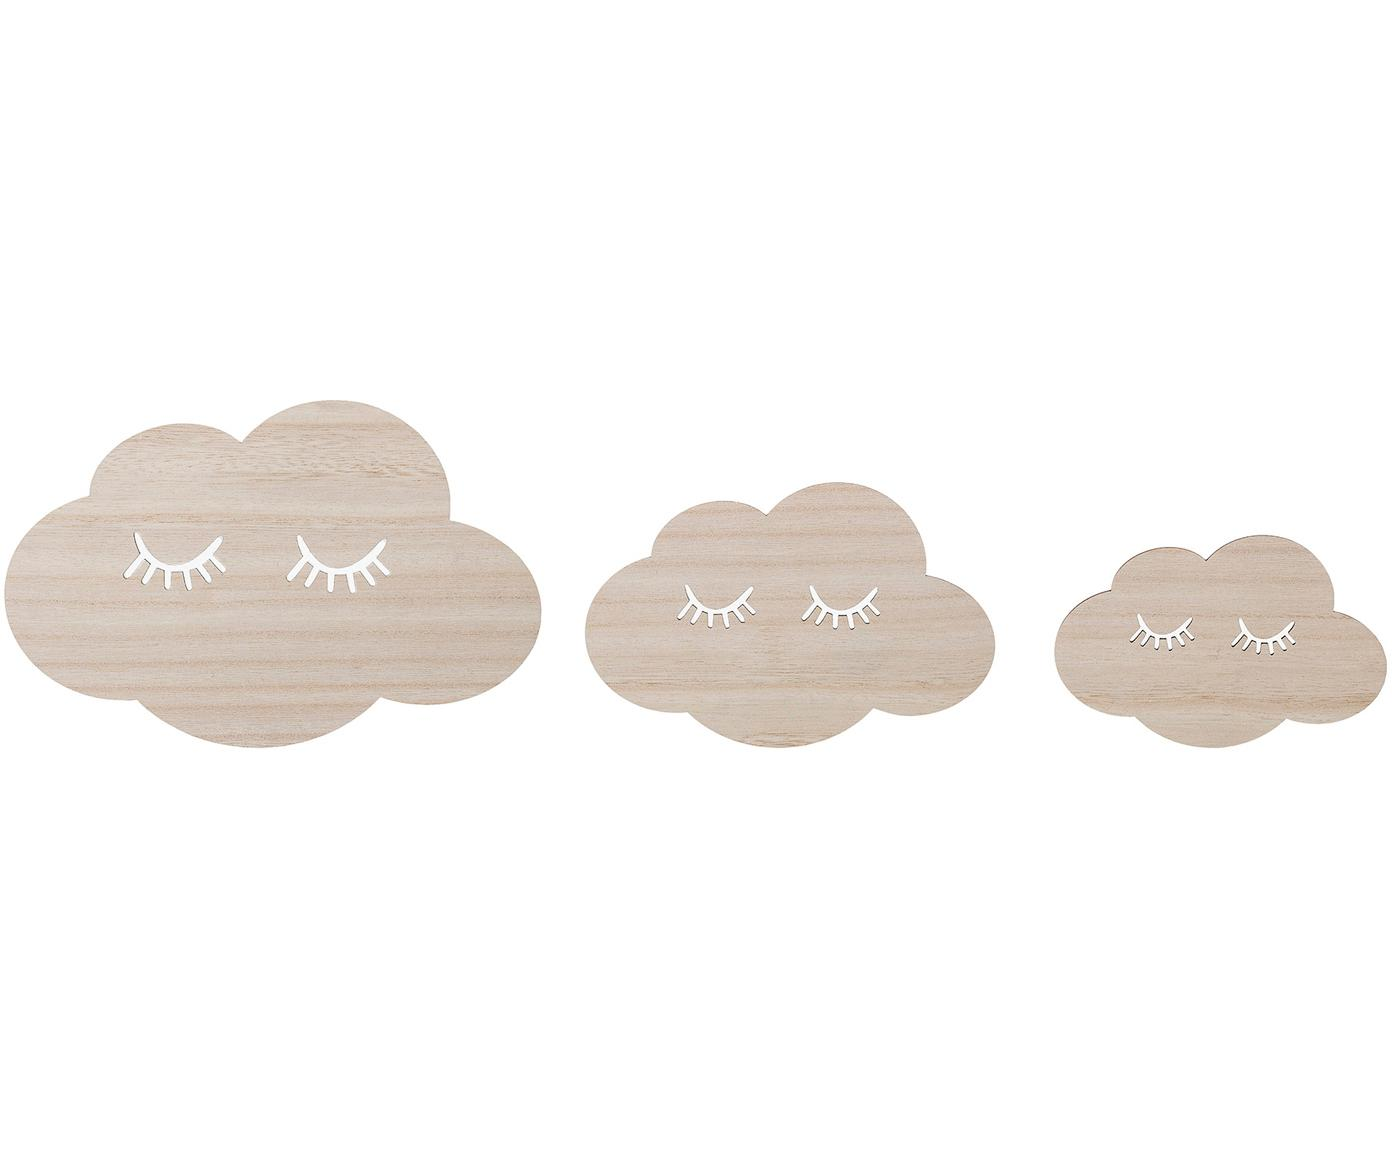 Set de decoraciones de pared Clouds, 3 pzas., Madera, Marrón, An 21 x Al 14 cm